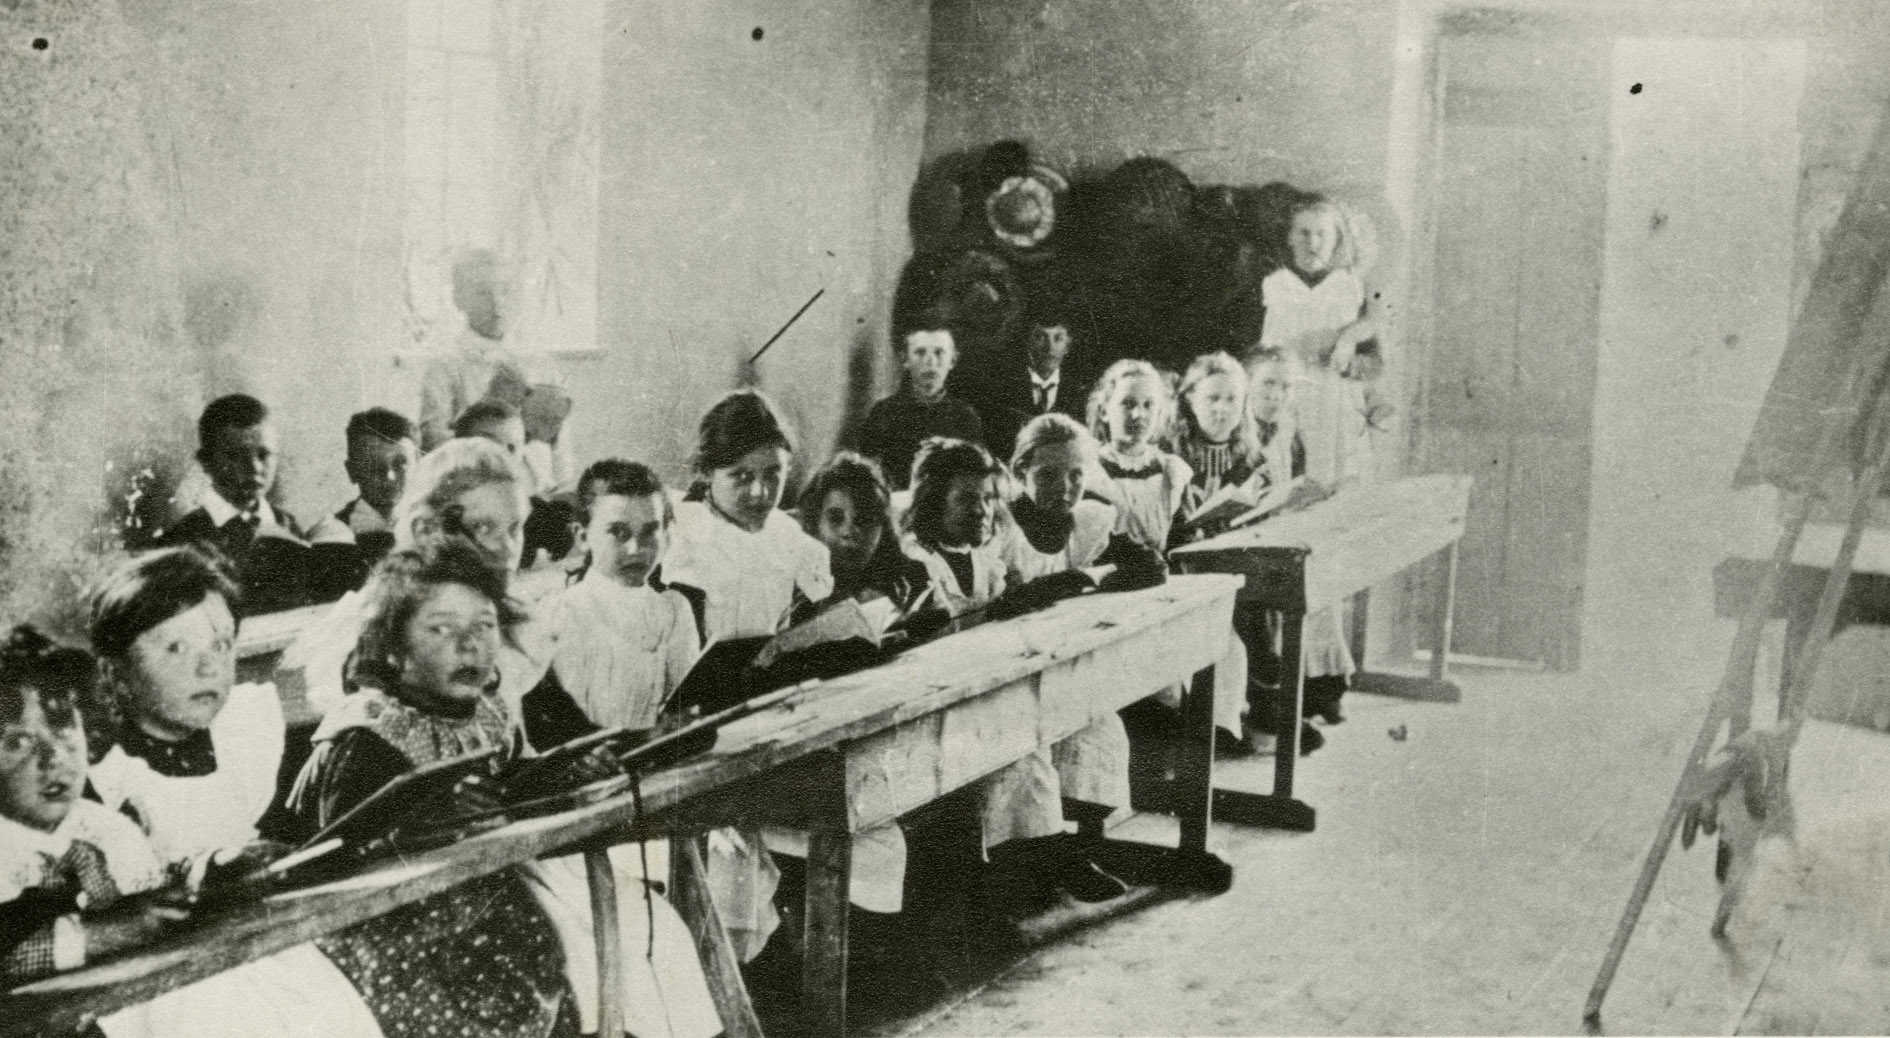 Black and white photograph of school chidren sitting at desks in a school room.